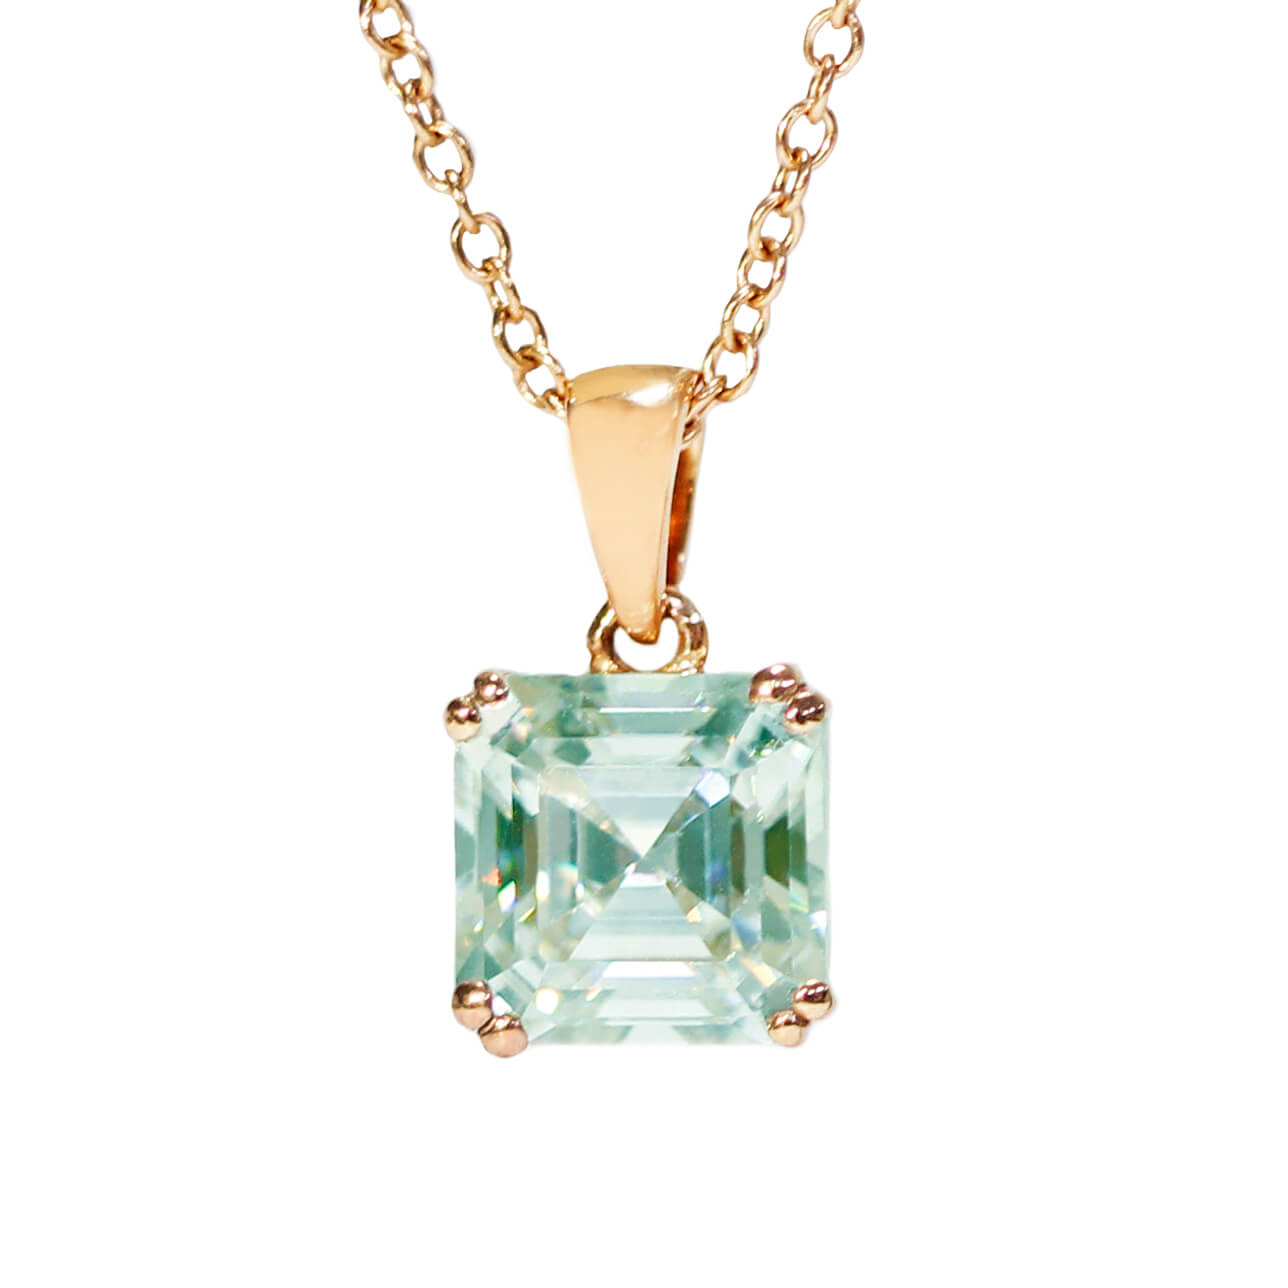 Mint Green Moissanite Asscher Cut 18K Gold Pendant - Lecaine Gems Moissanite